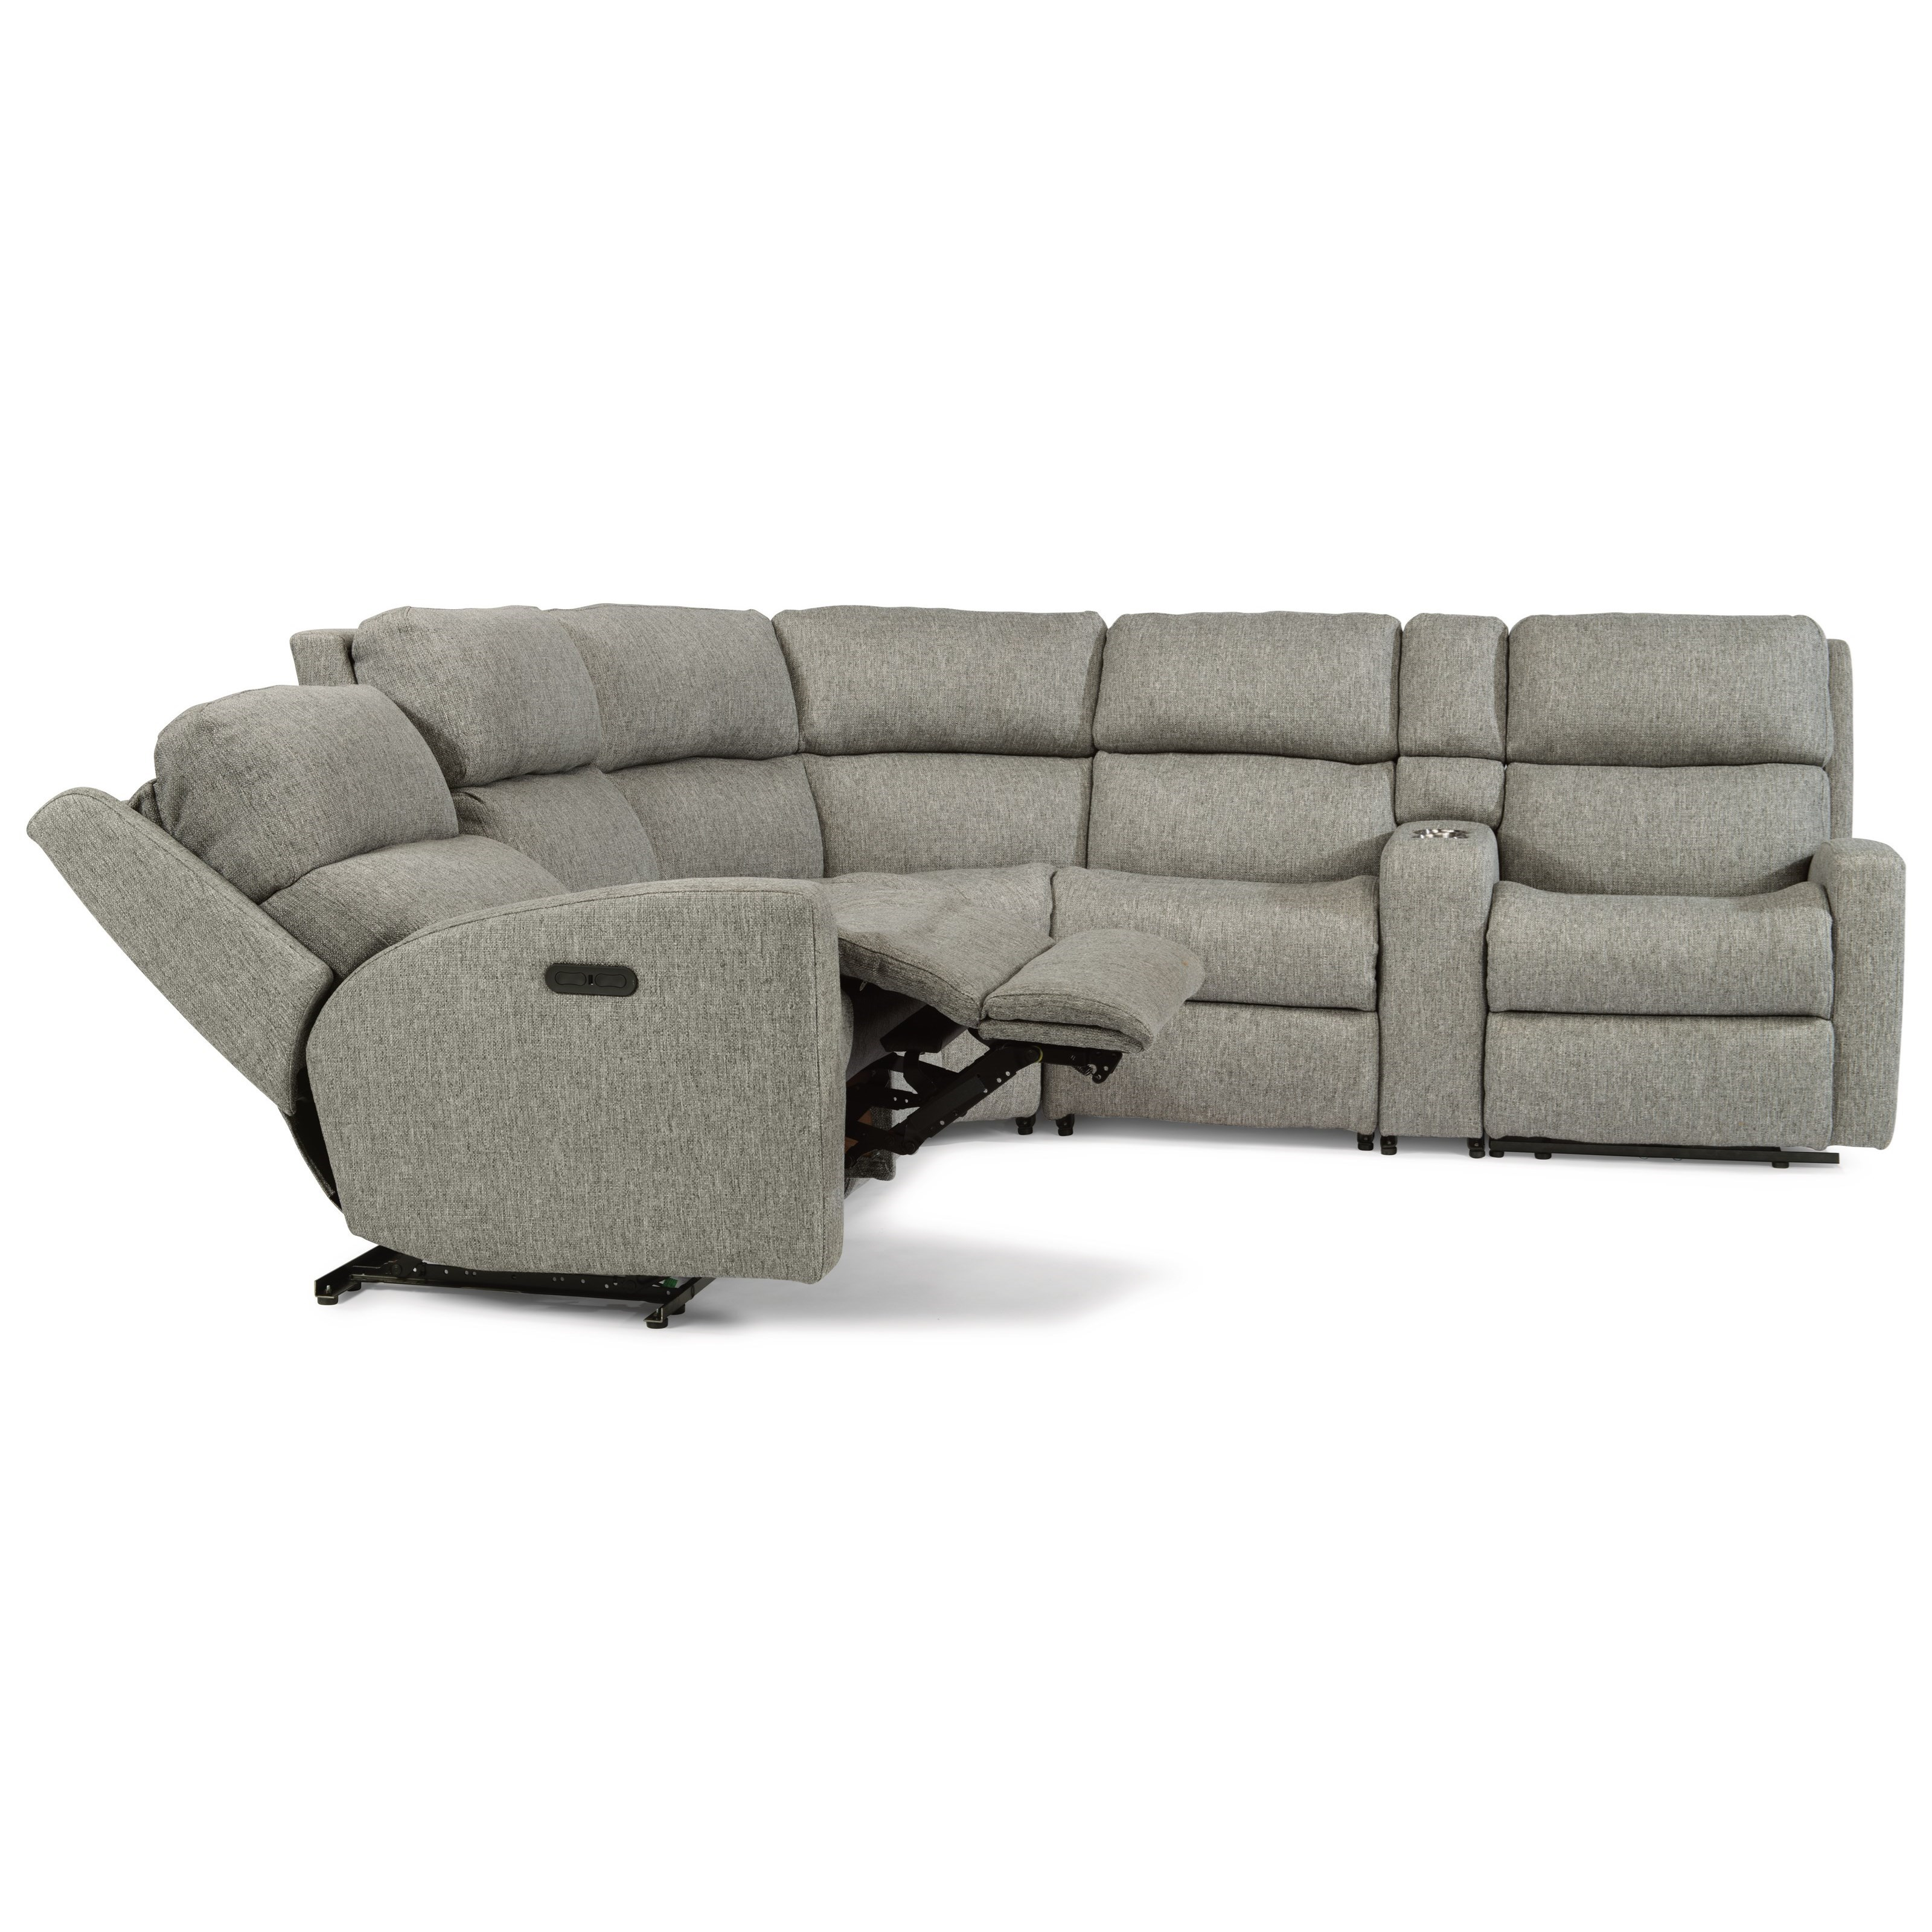 Catalina 6 Piece Power Reclining Sectional by Flexsteel at Mueller Furniture